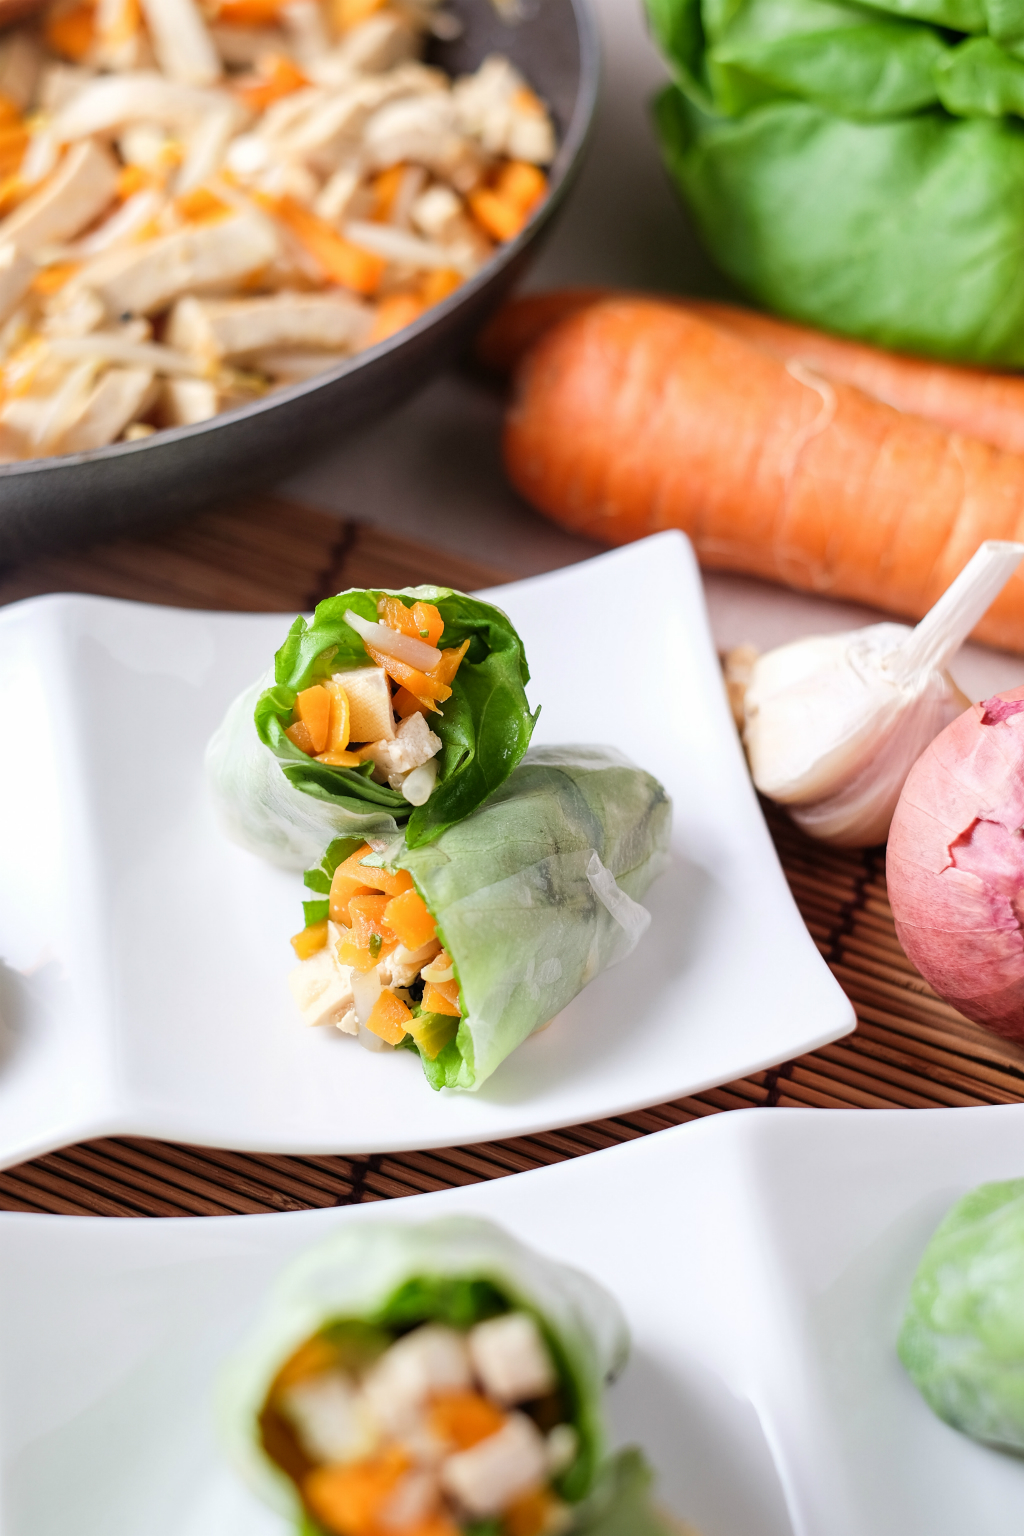 Healthy Lifestyle Festival SG: Vegetable Roll